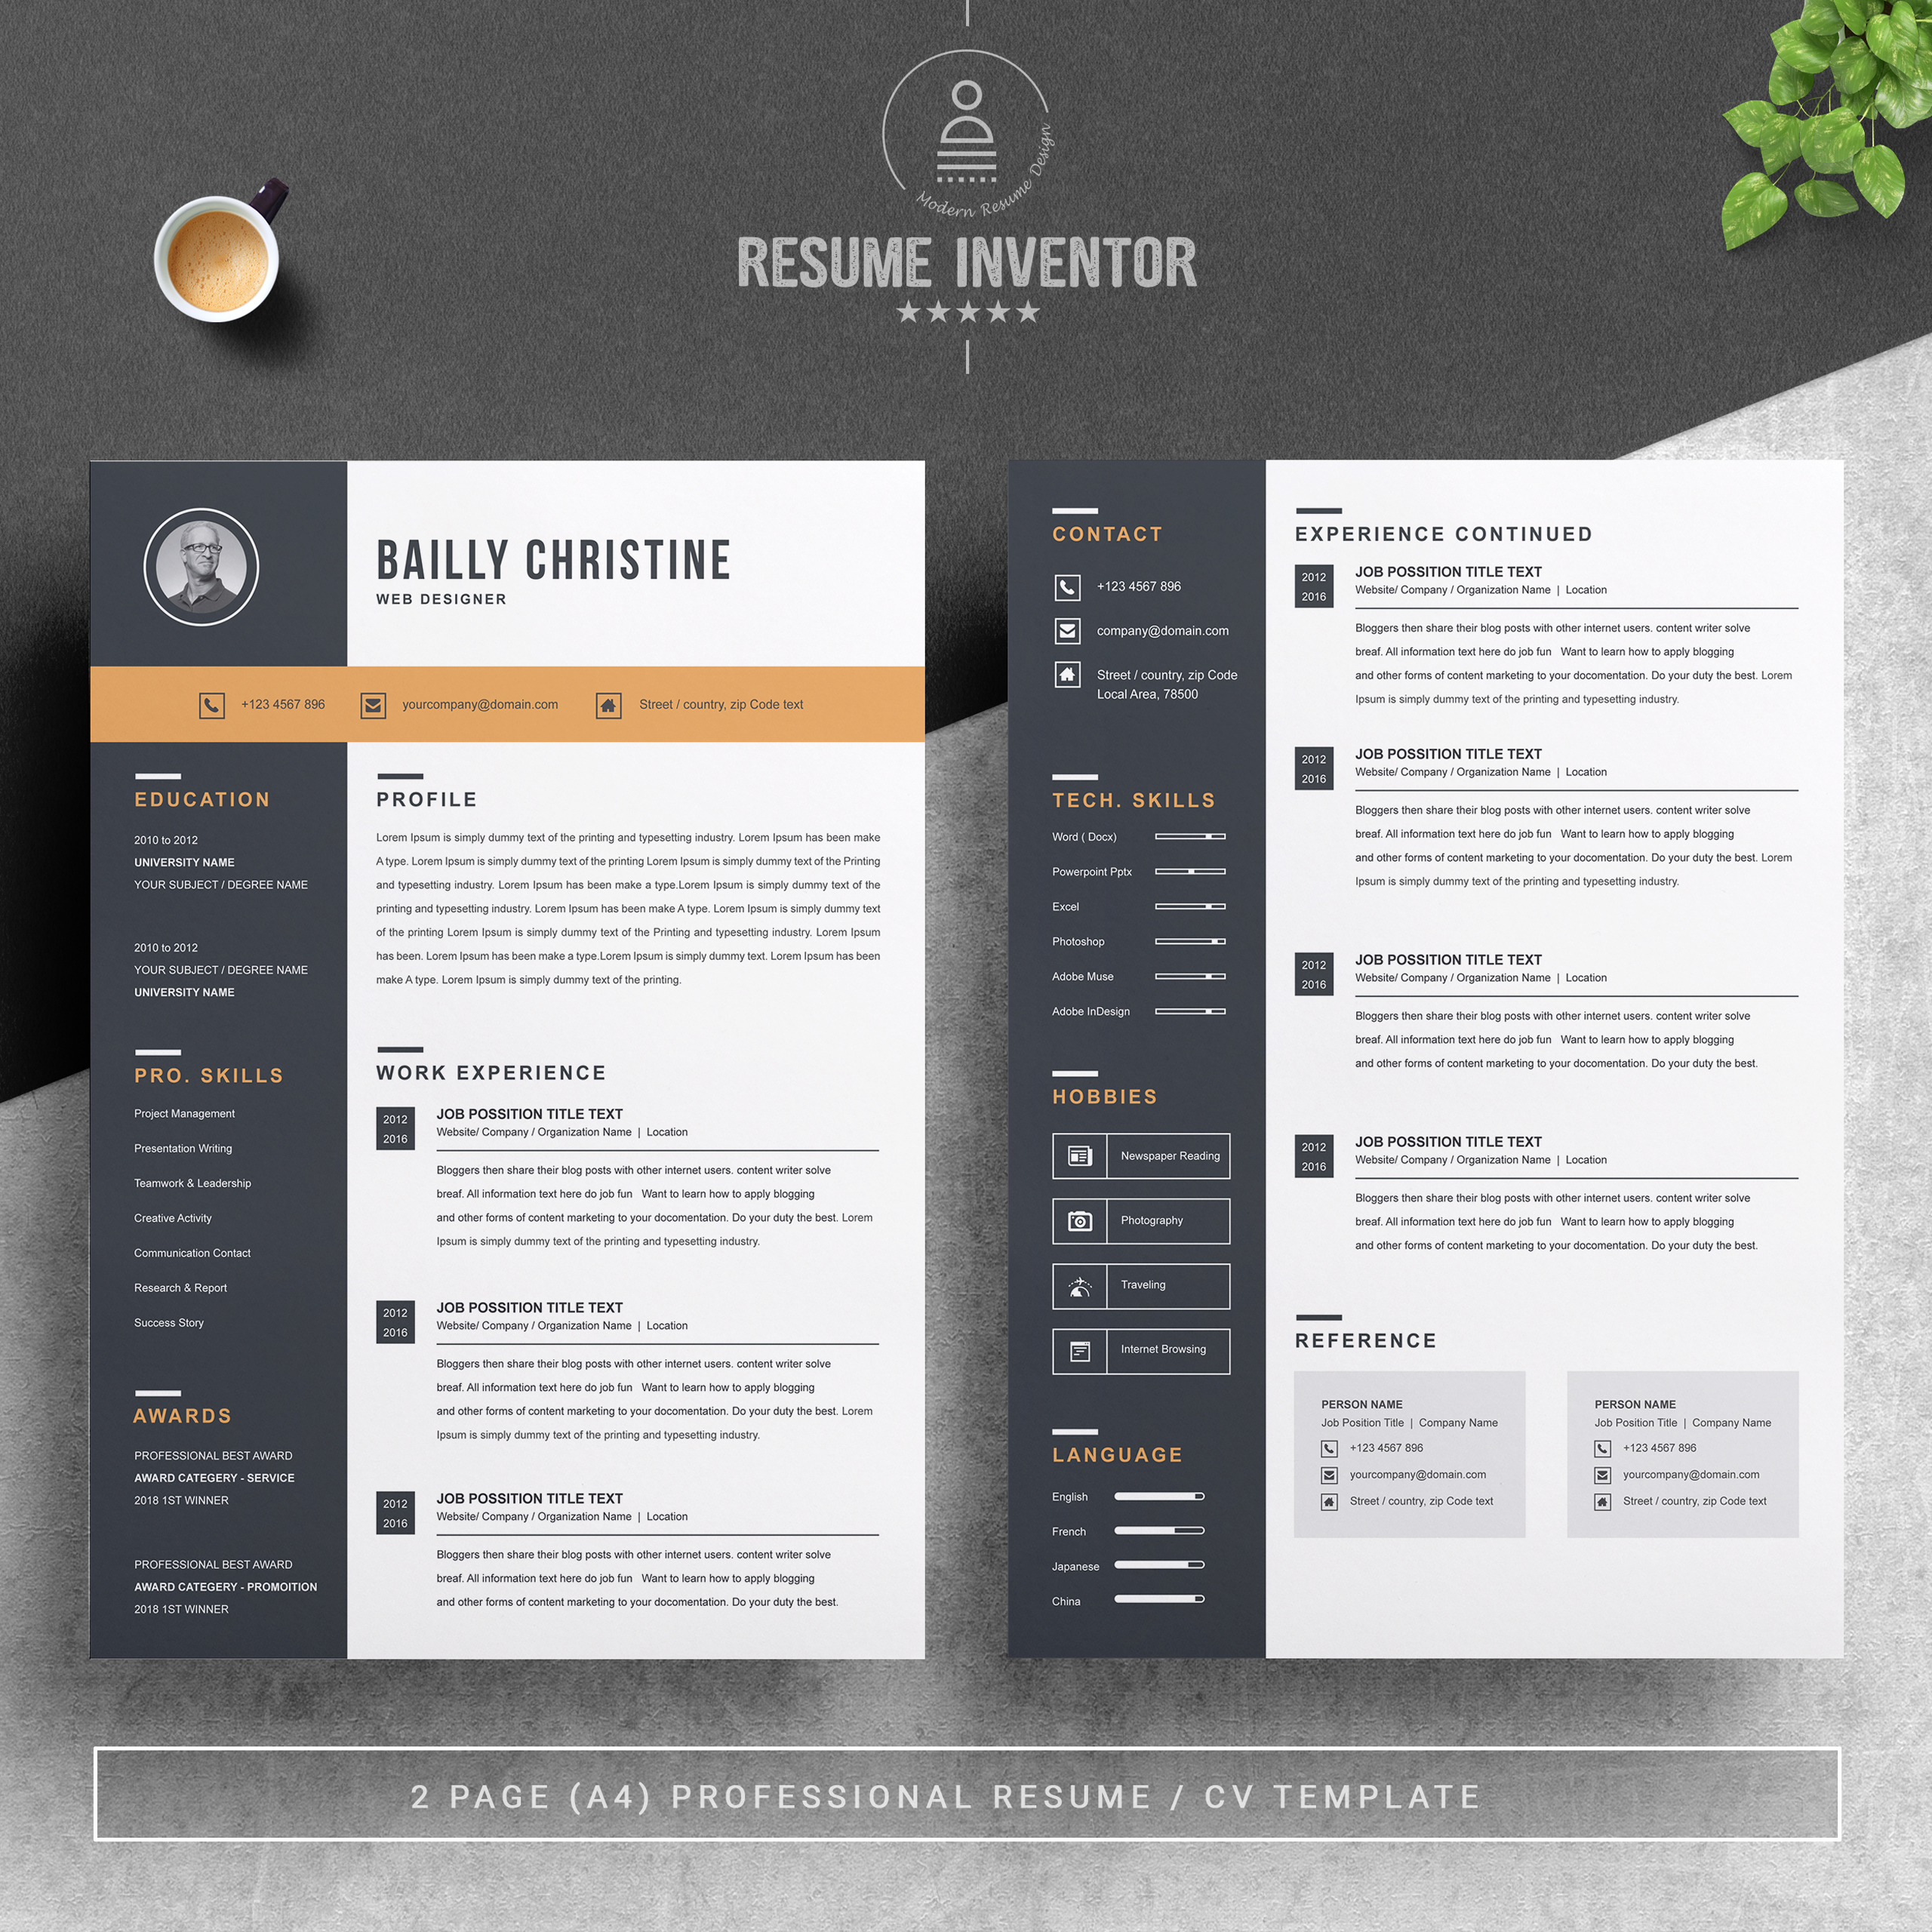 professional resume template word for job resumeinventor design free legal manager sample Resume Professional Resume Design